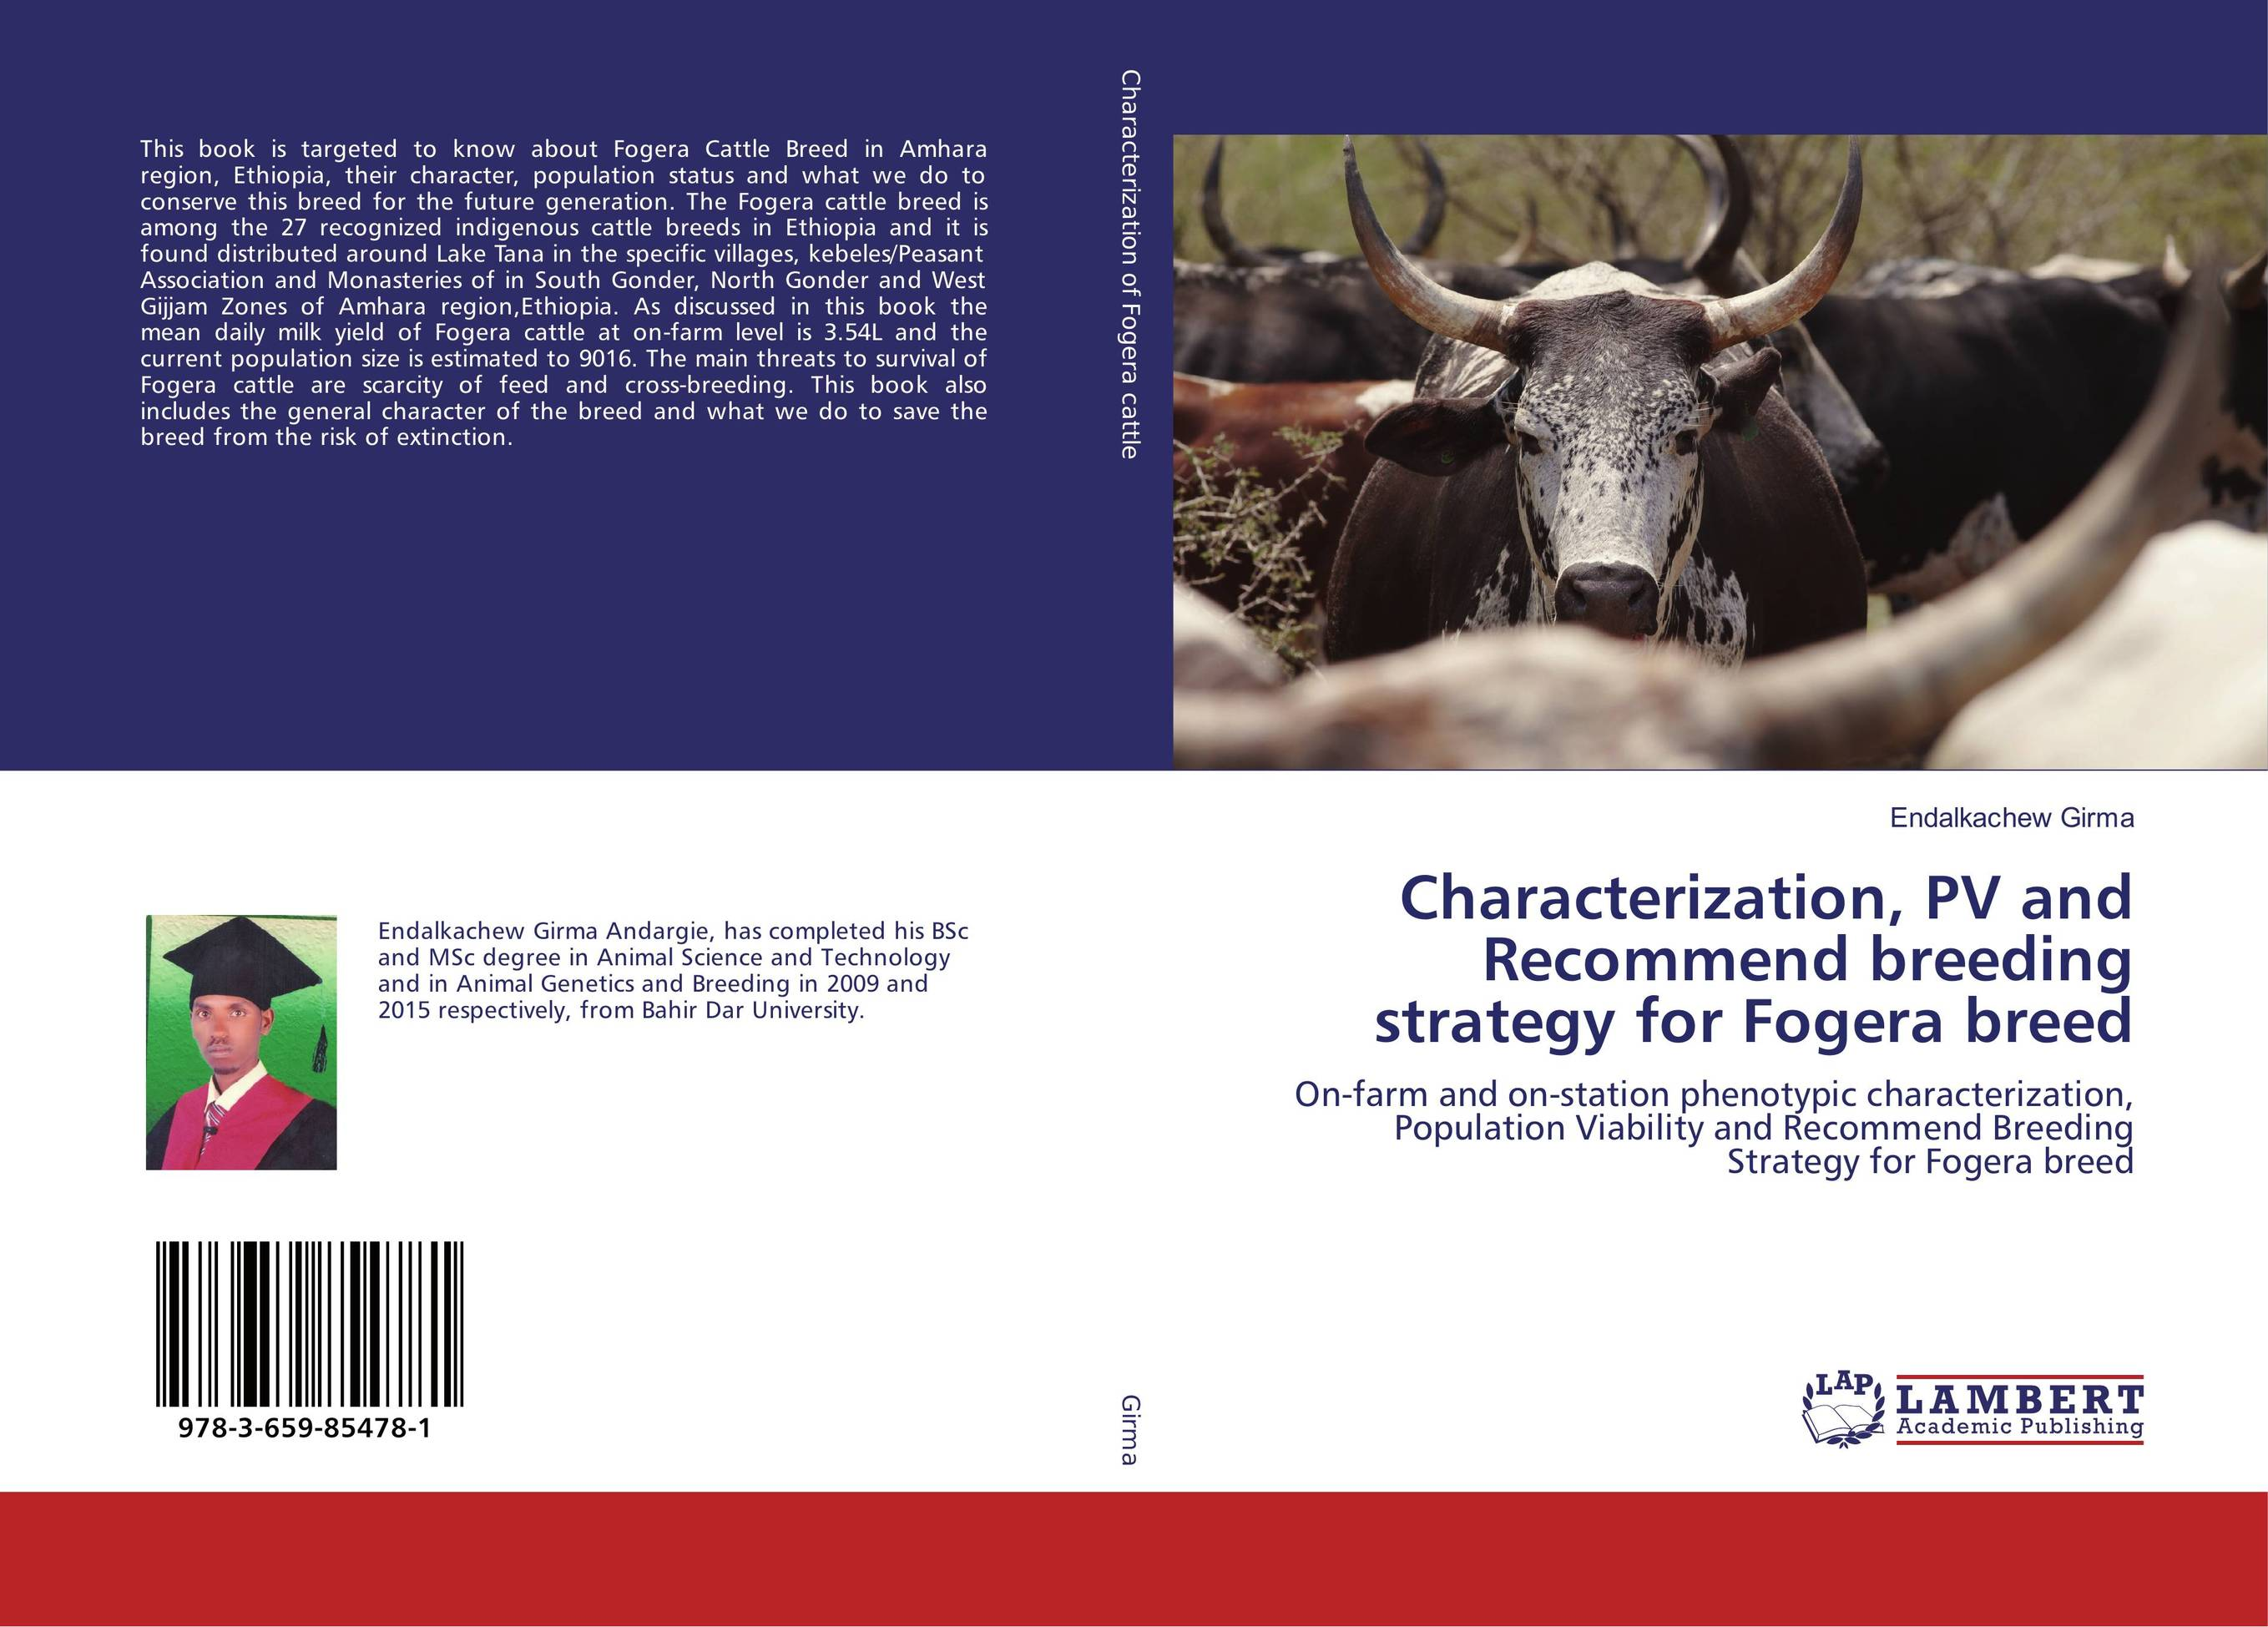 Фото Characterization, PV and Recommend breeding strategy for Fogera breed cervical cancer in amhara region in ethiopia